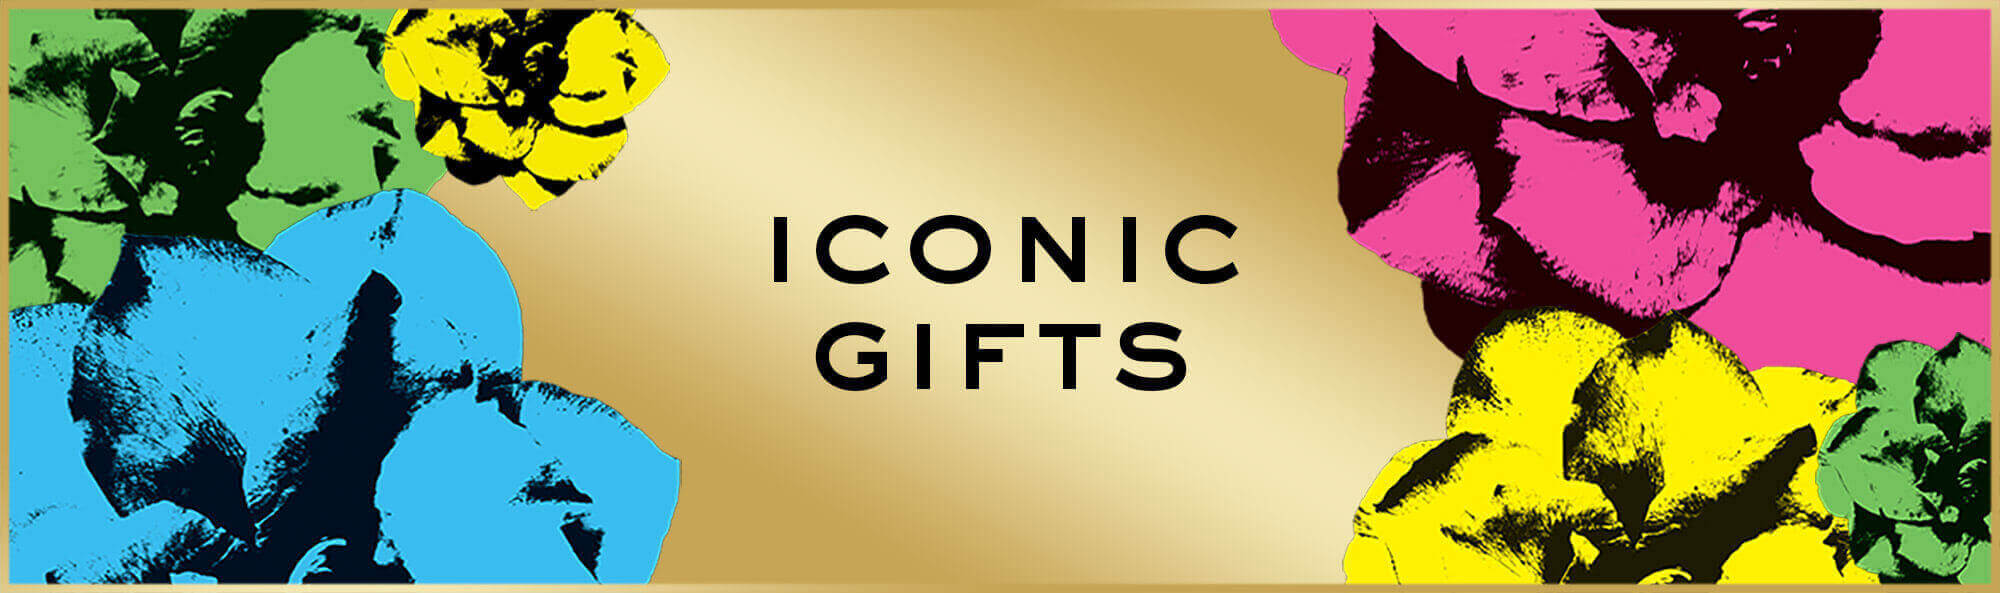 Iconic Gifts Banner With Coloured Flowers